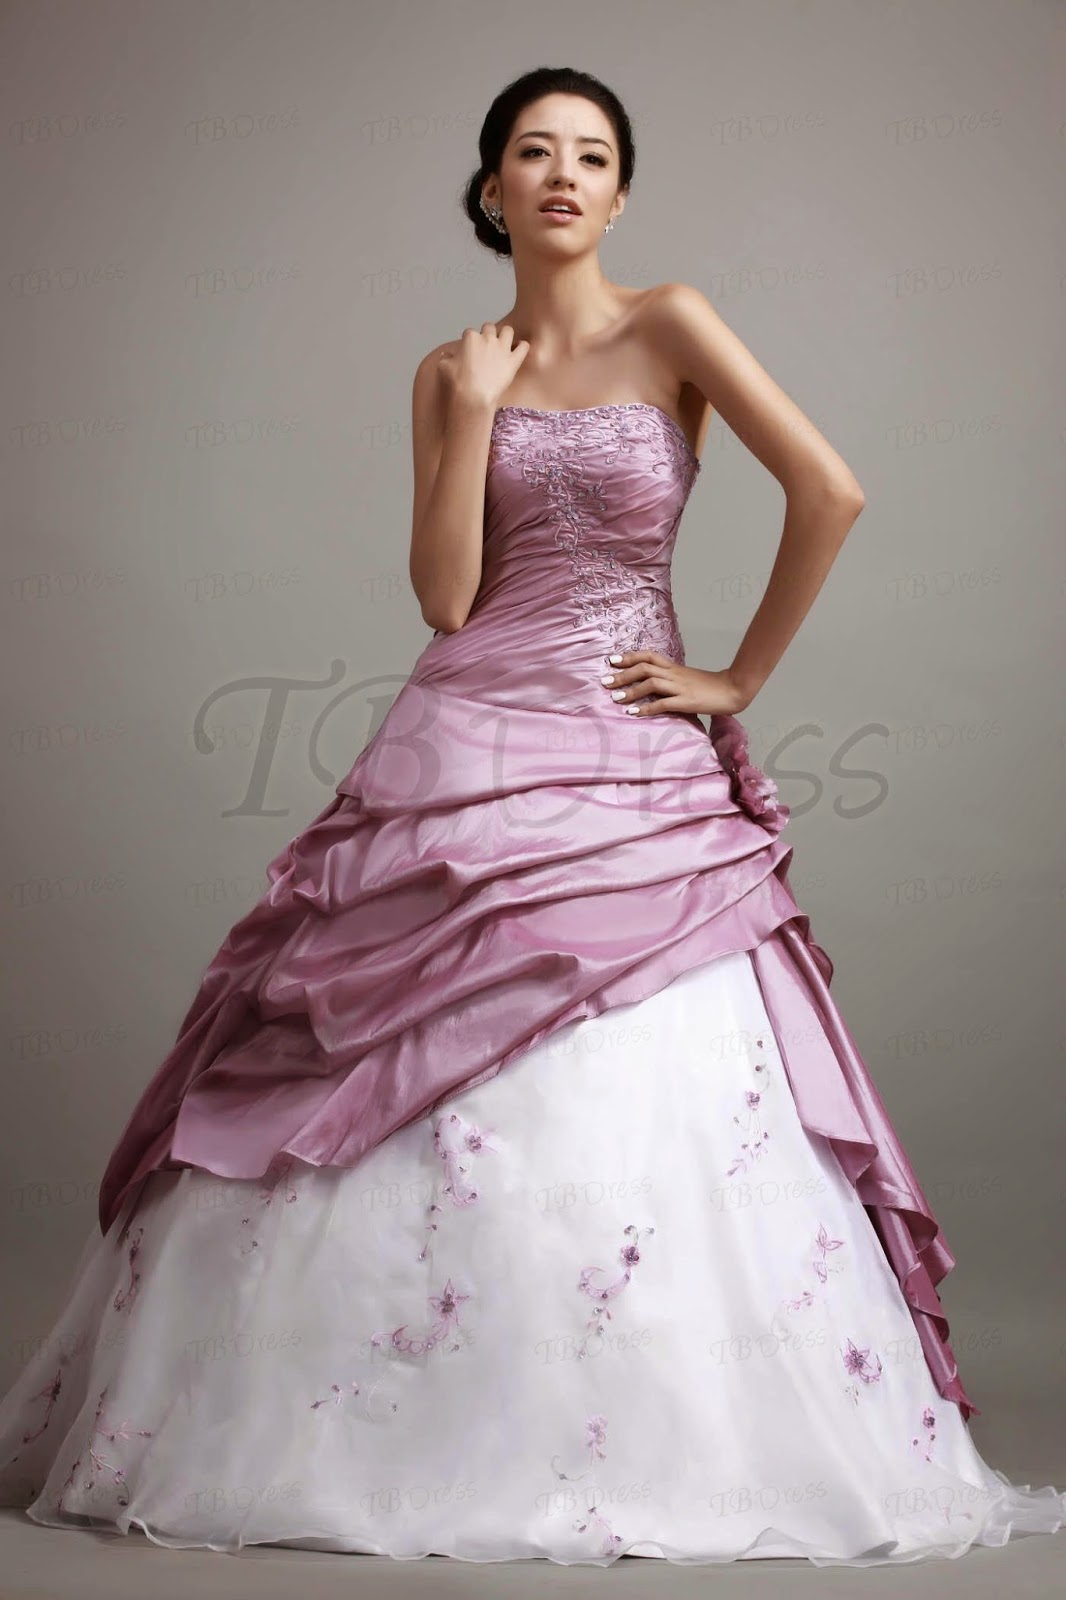 http://www.tbdress.com/product/A-Line-Strapless-Floor-Length-Empire-Waistline-Ruched-Cibeless-Ball-Gown-Quinceanera-Dress-9654346.html